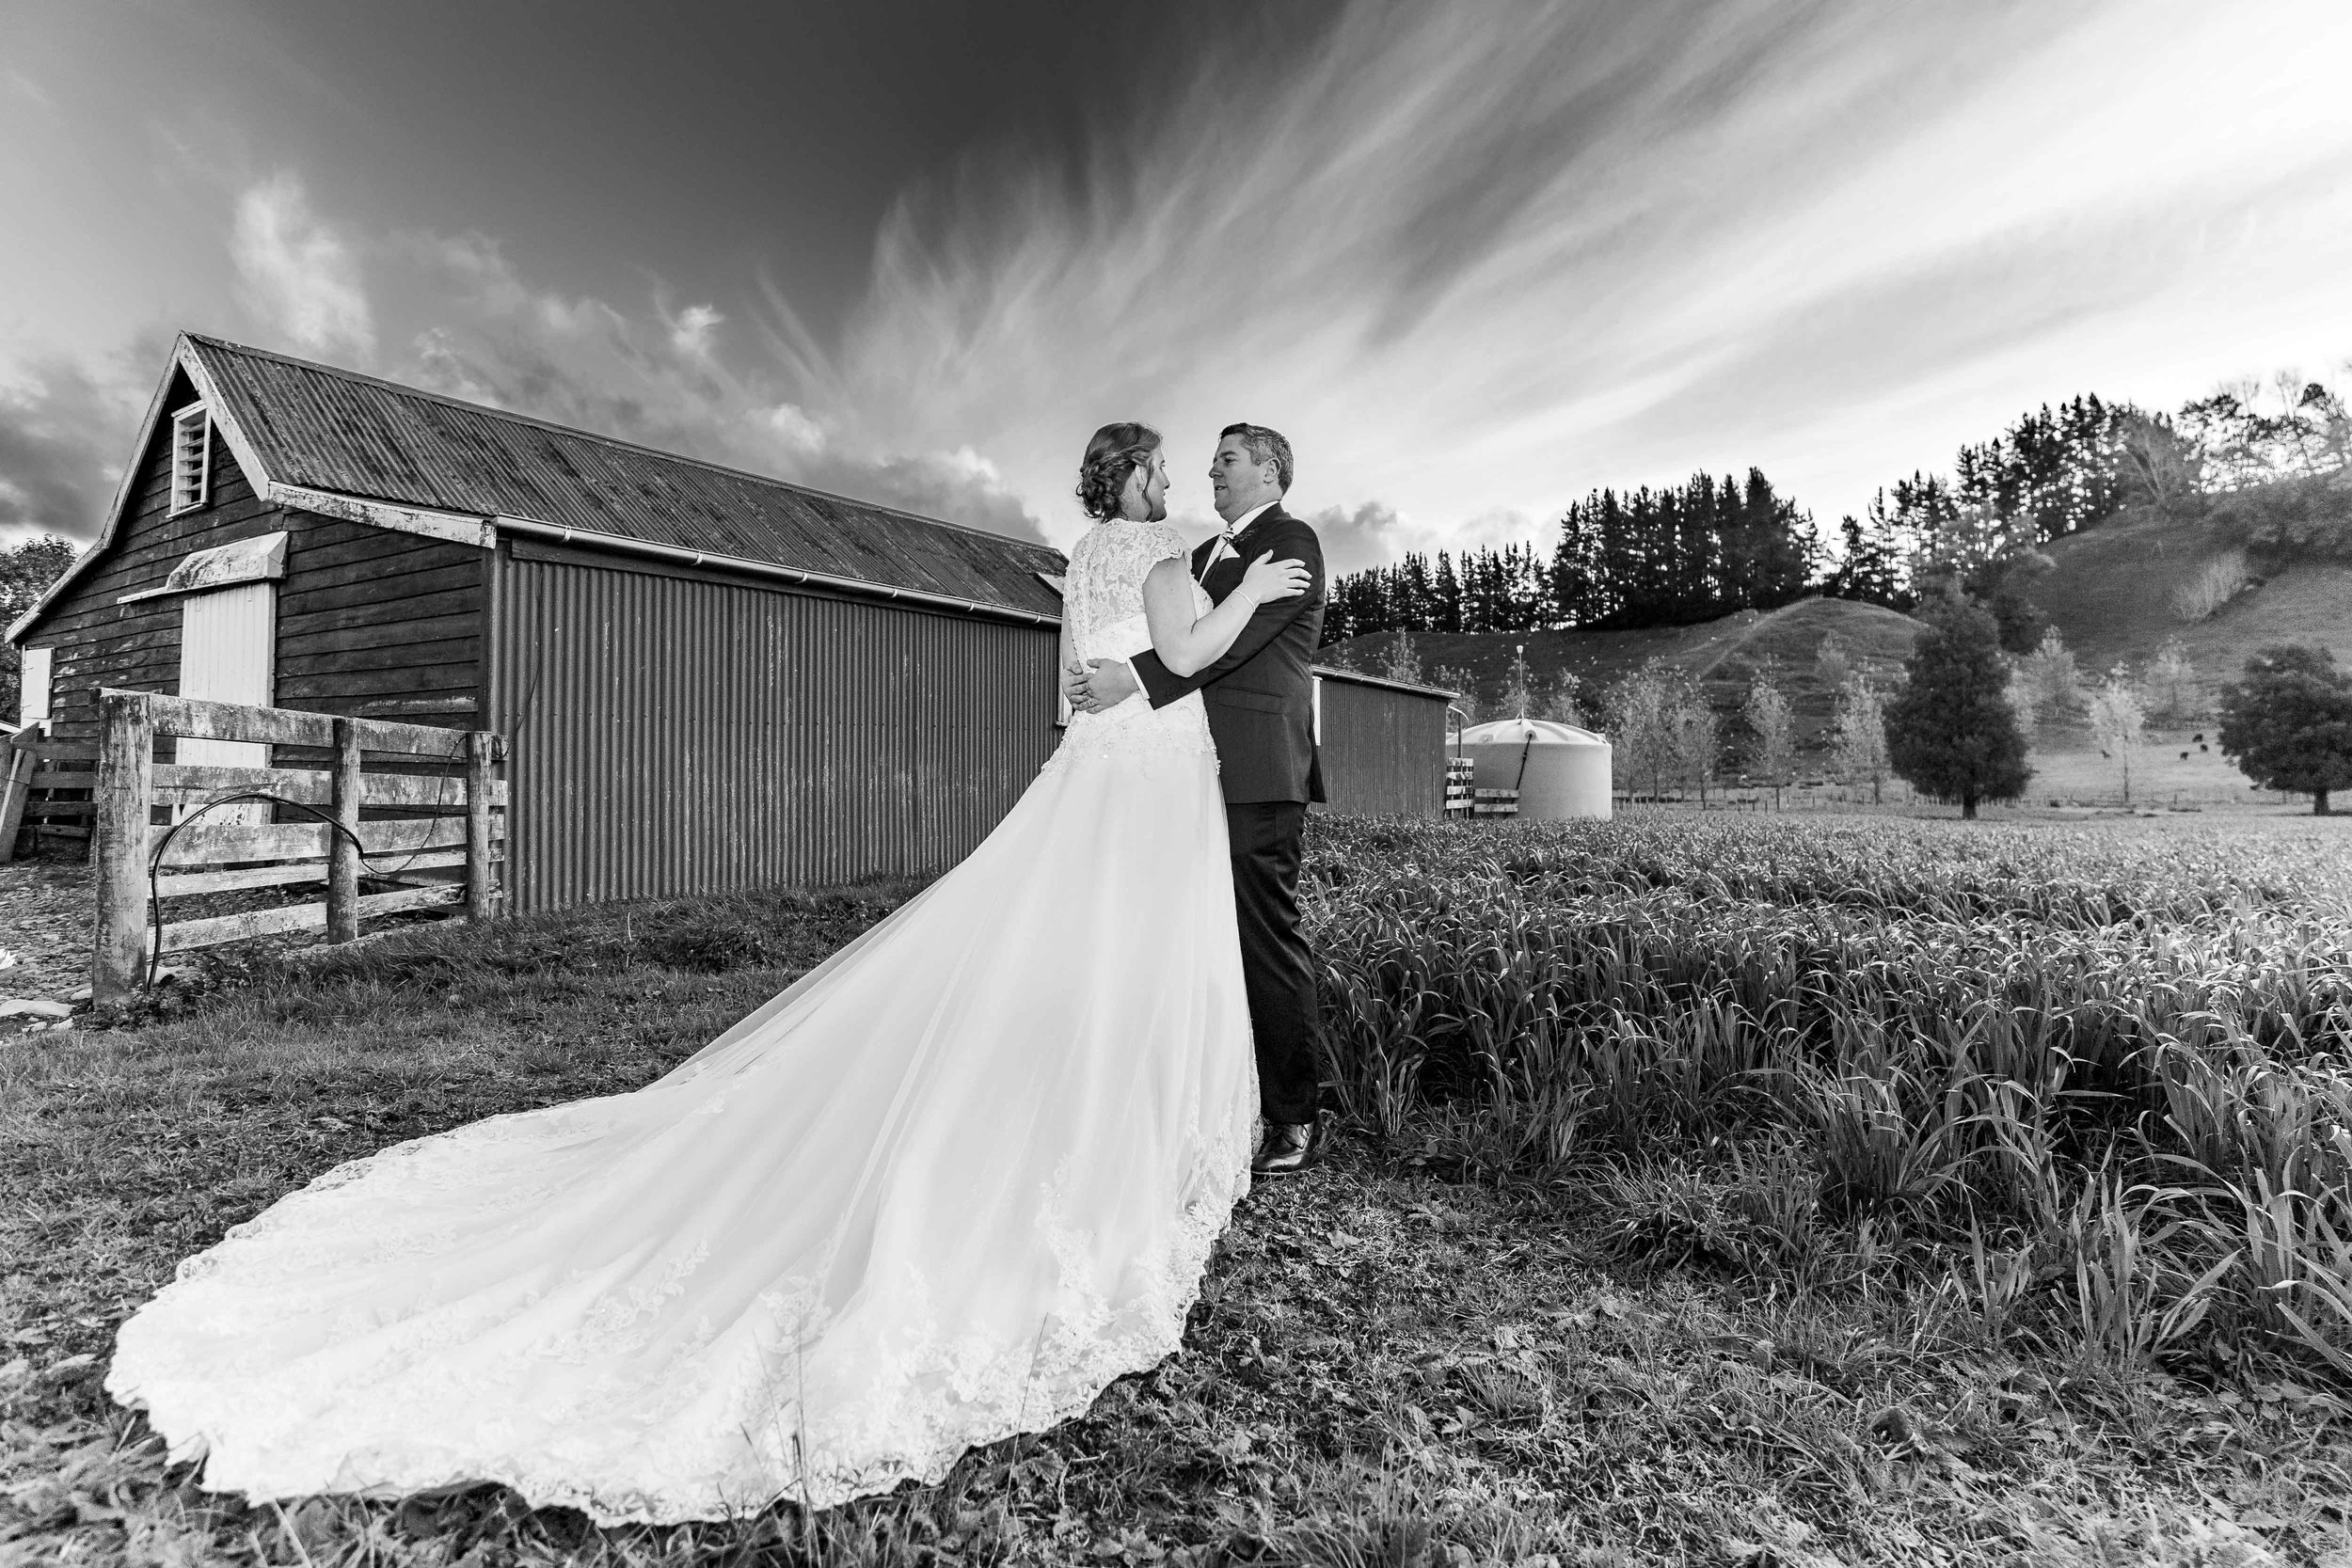 makoura-lodge-weeding-photography-highlight-palmerston-north-new-zealand-1.jpg